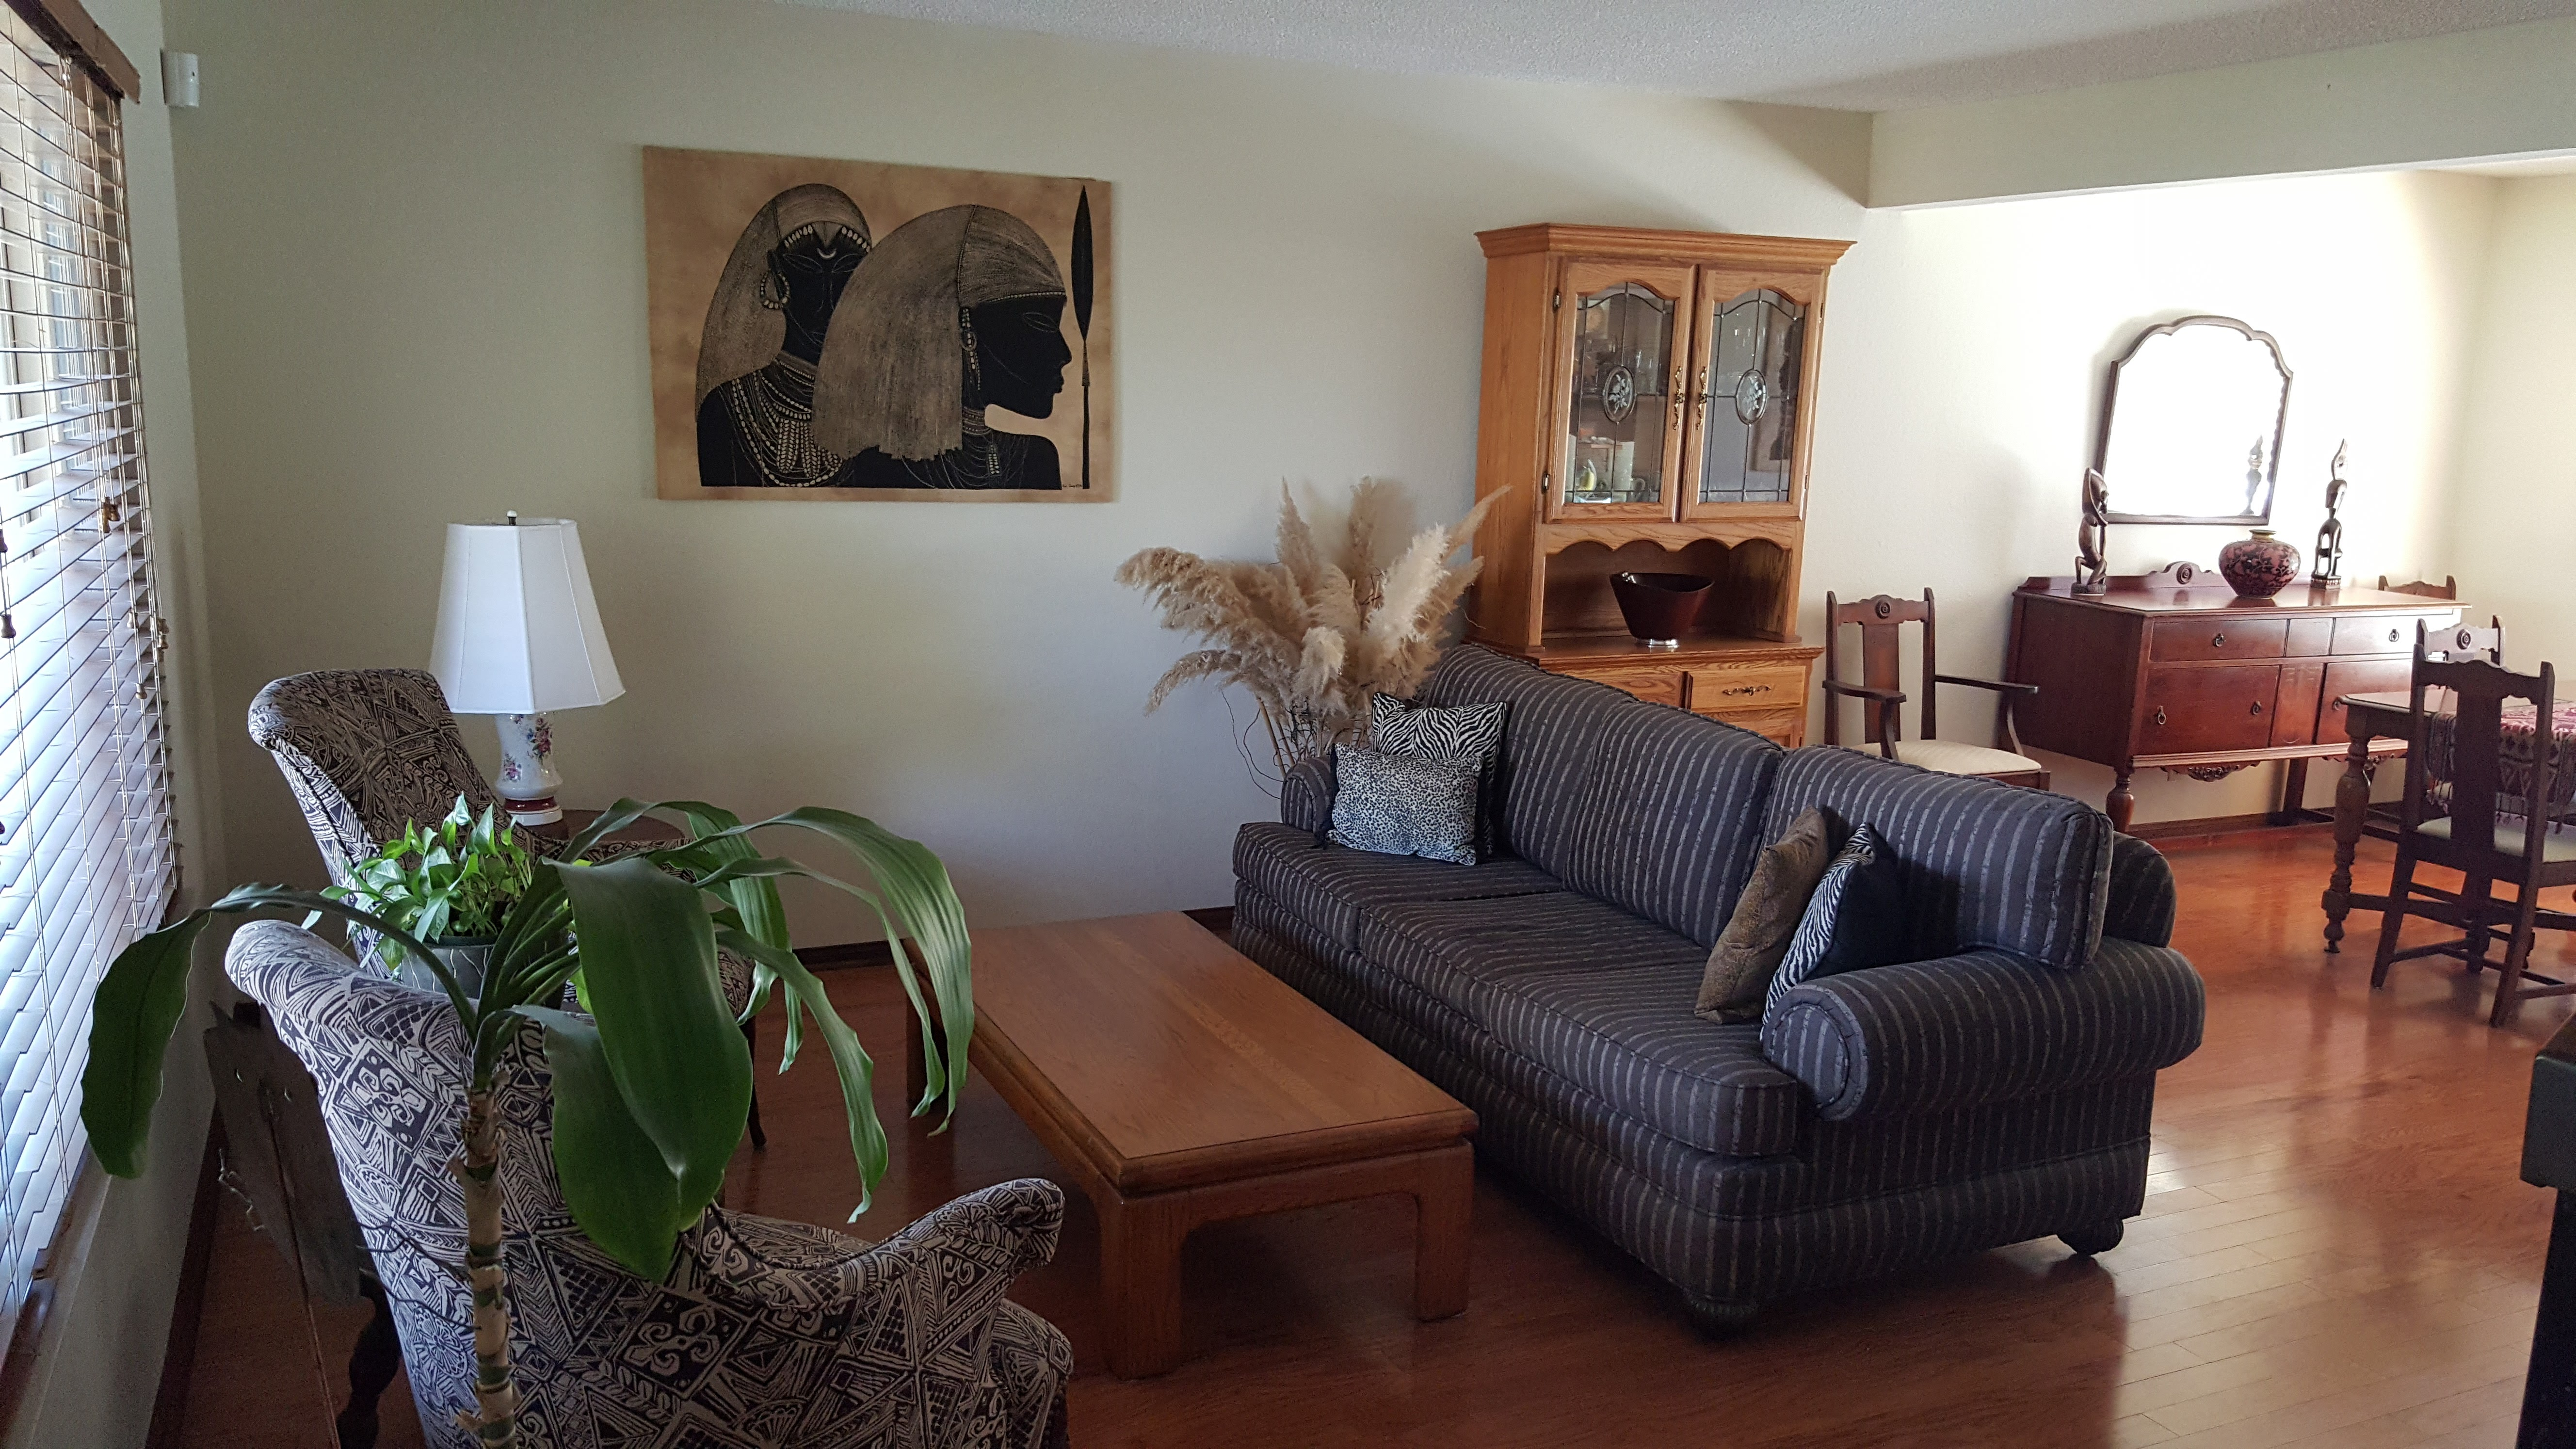 3400 Keel Ave Home for Sale living room by David Tovar of Exit Realty